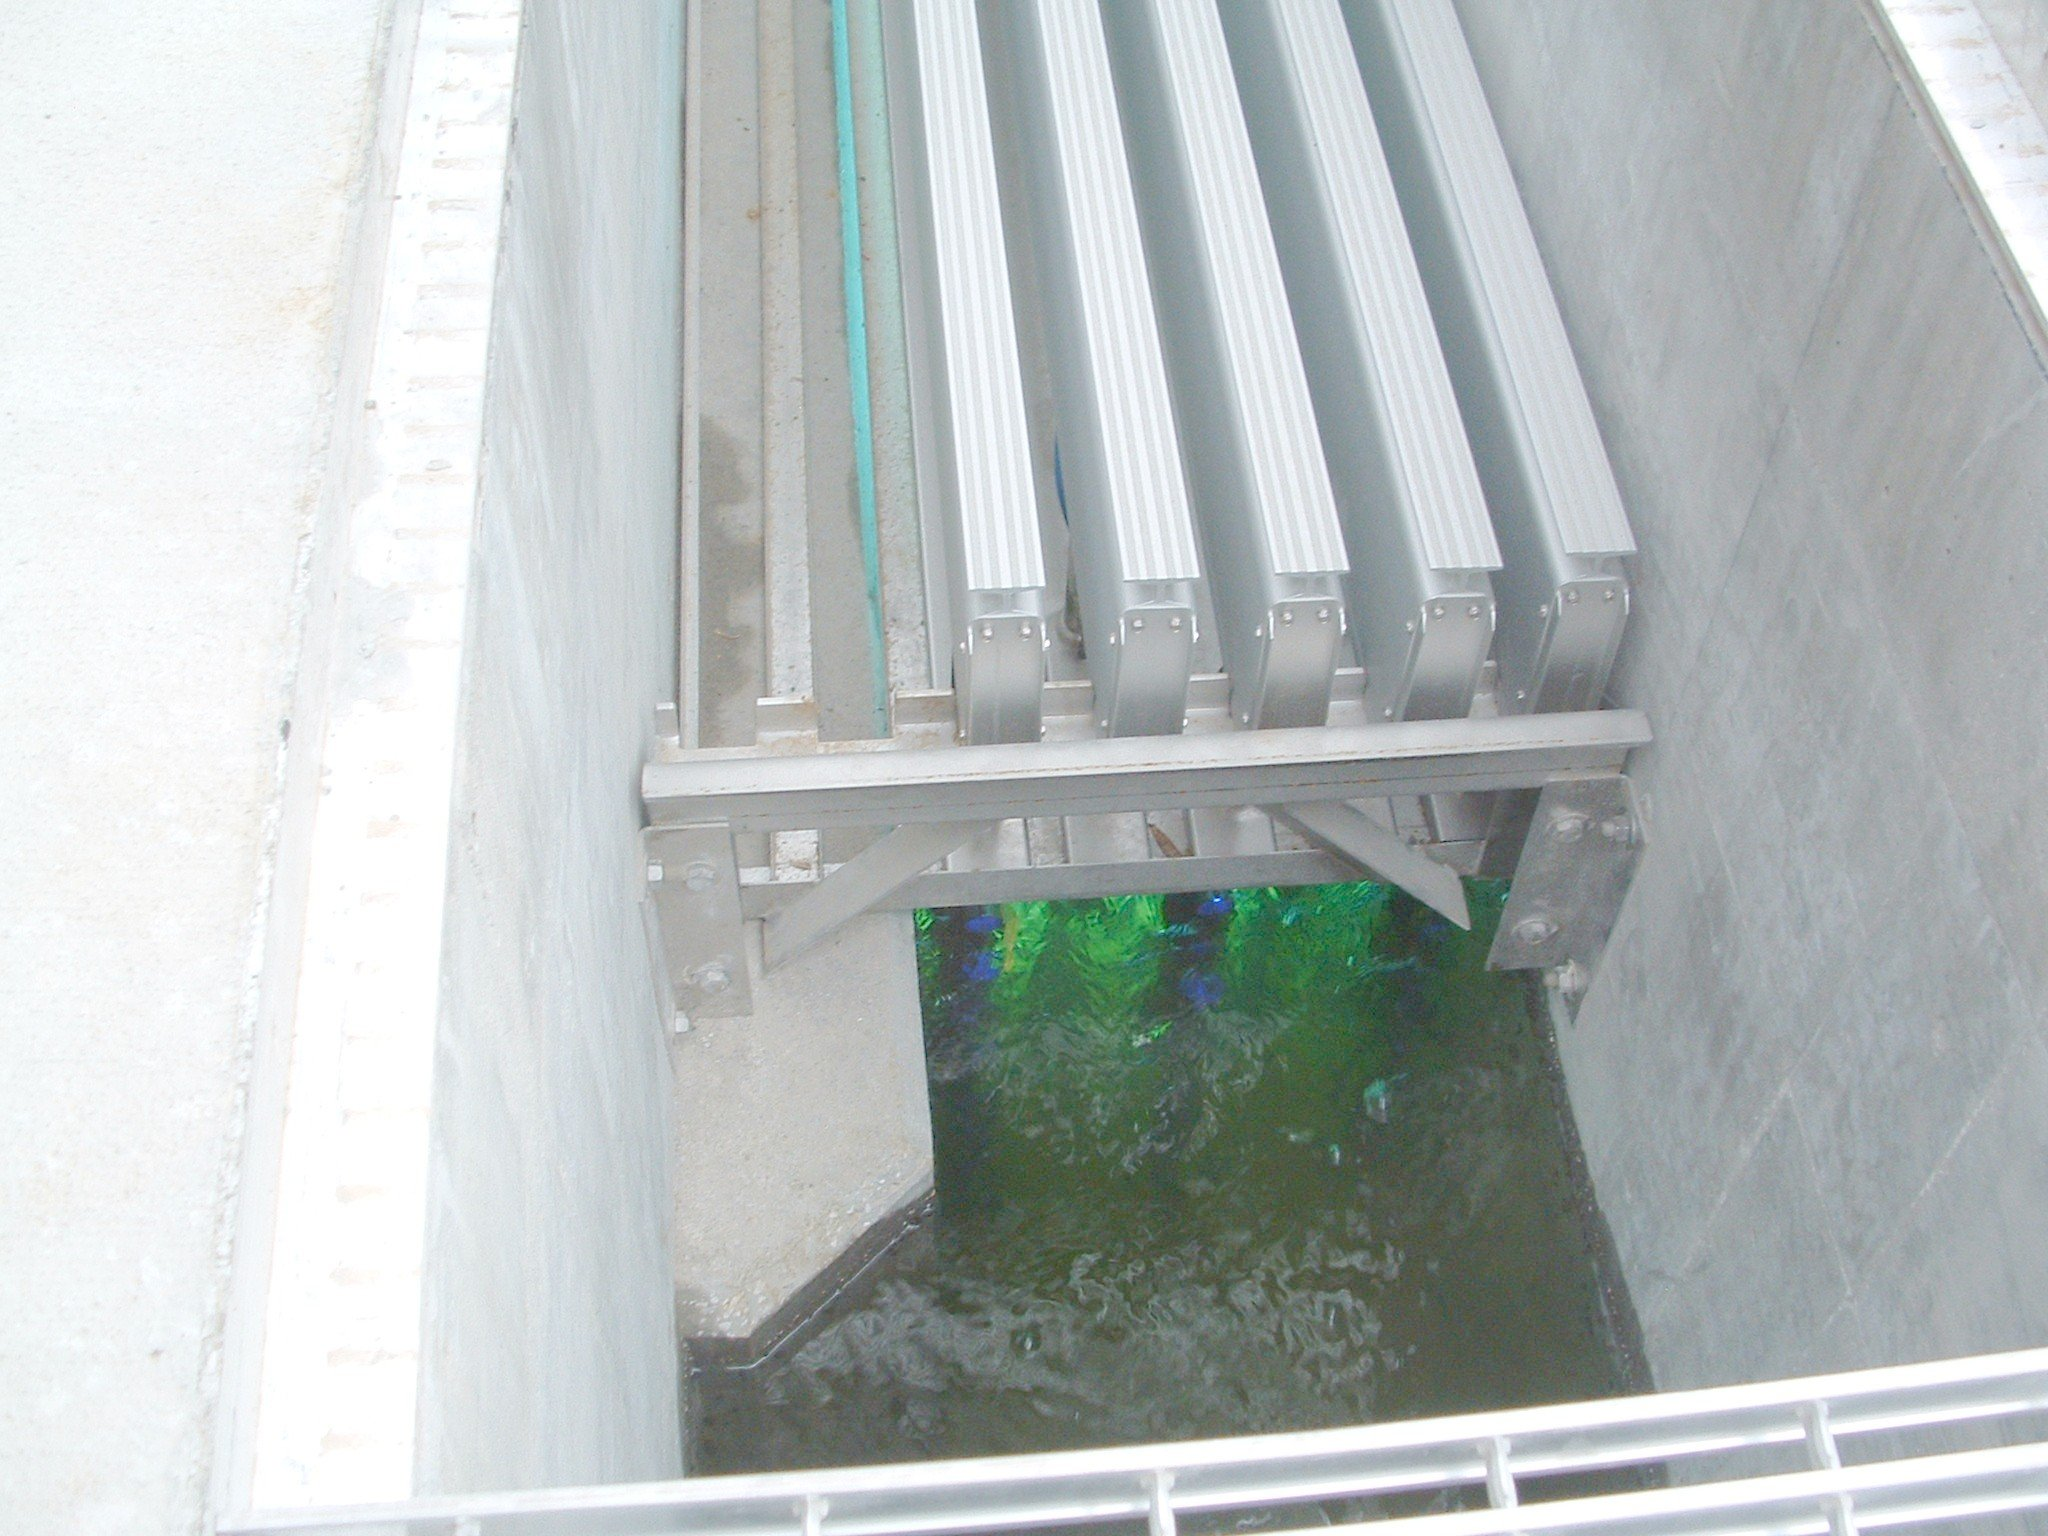 The disinfection chamber seated over some treated wastewater.